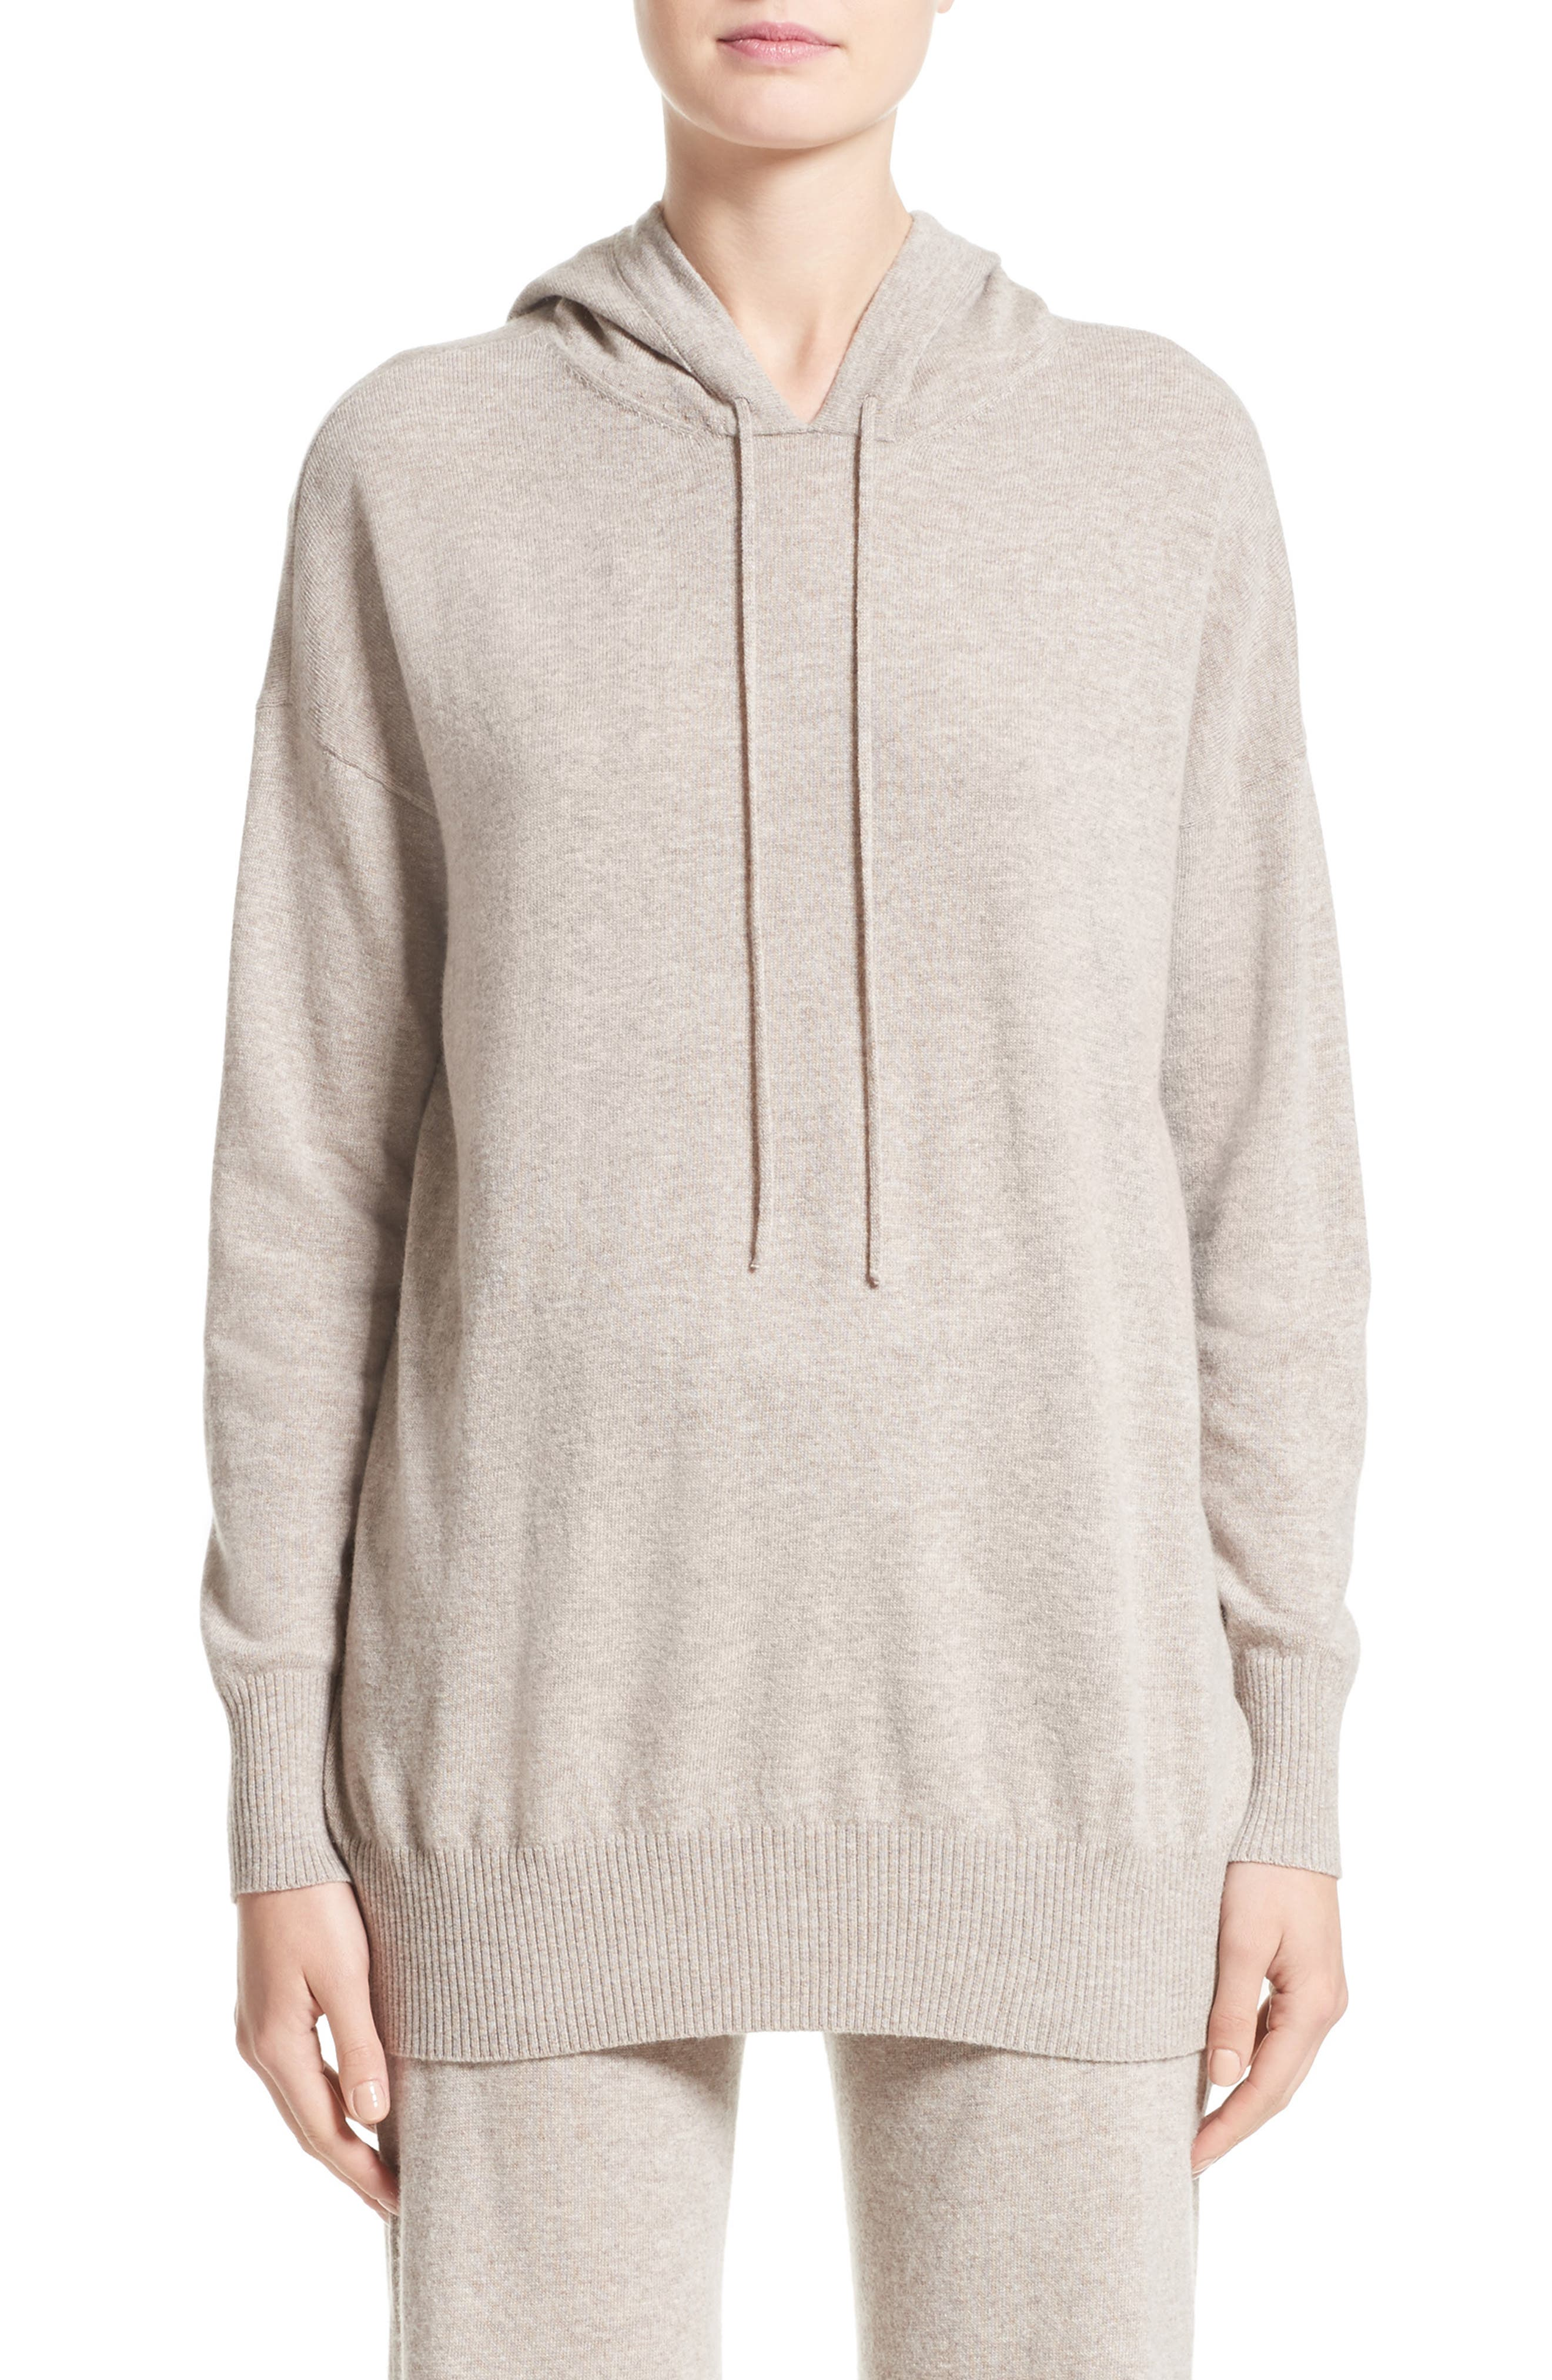 Nitra Wool & Cashmere Hooded Sweater,                         Main,                         color,